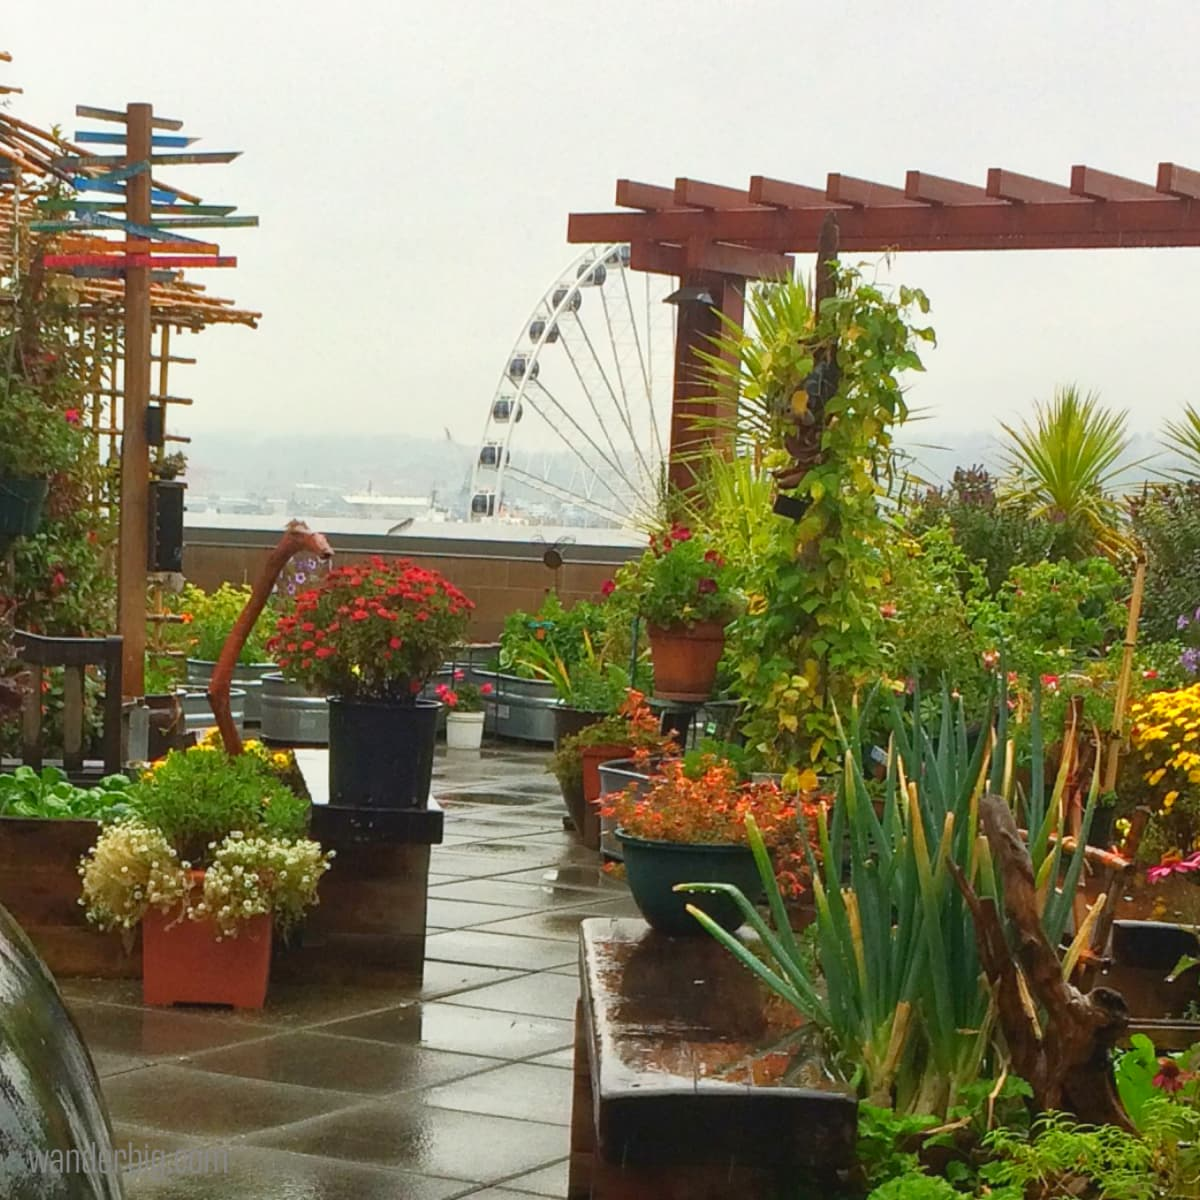 Pike place market's secret rooftop garden: how to find this secluded urban oasis during your visit.